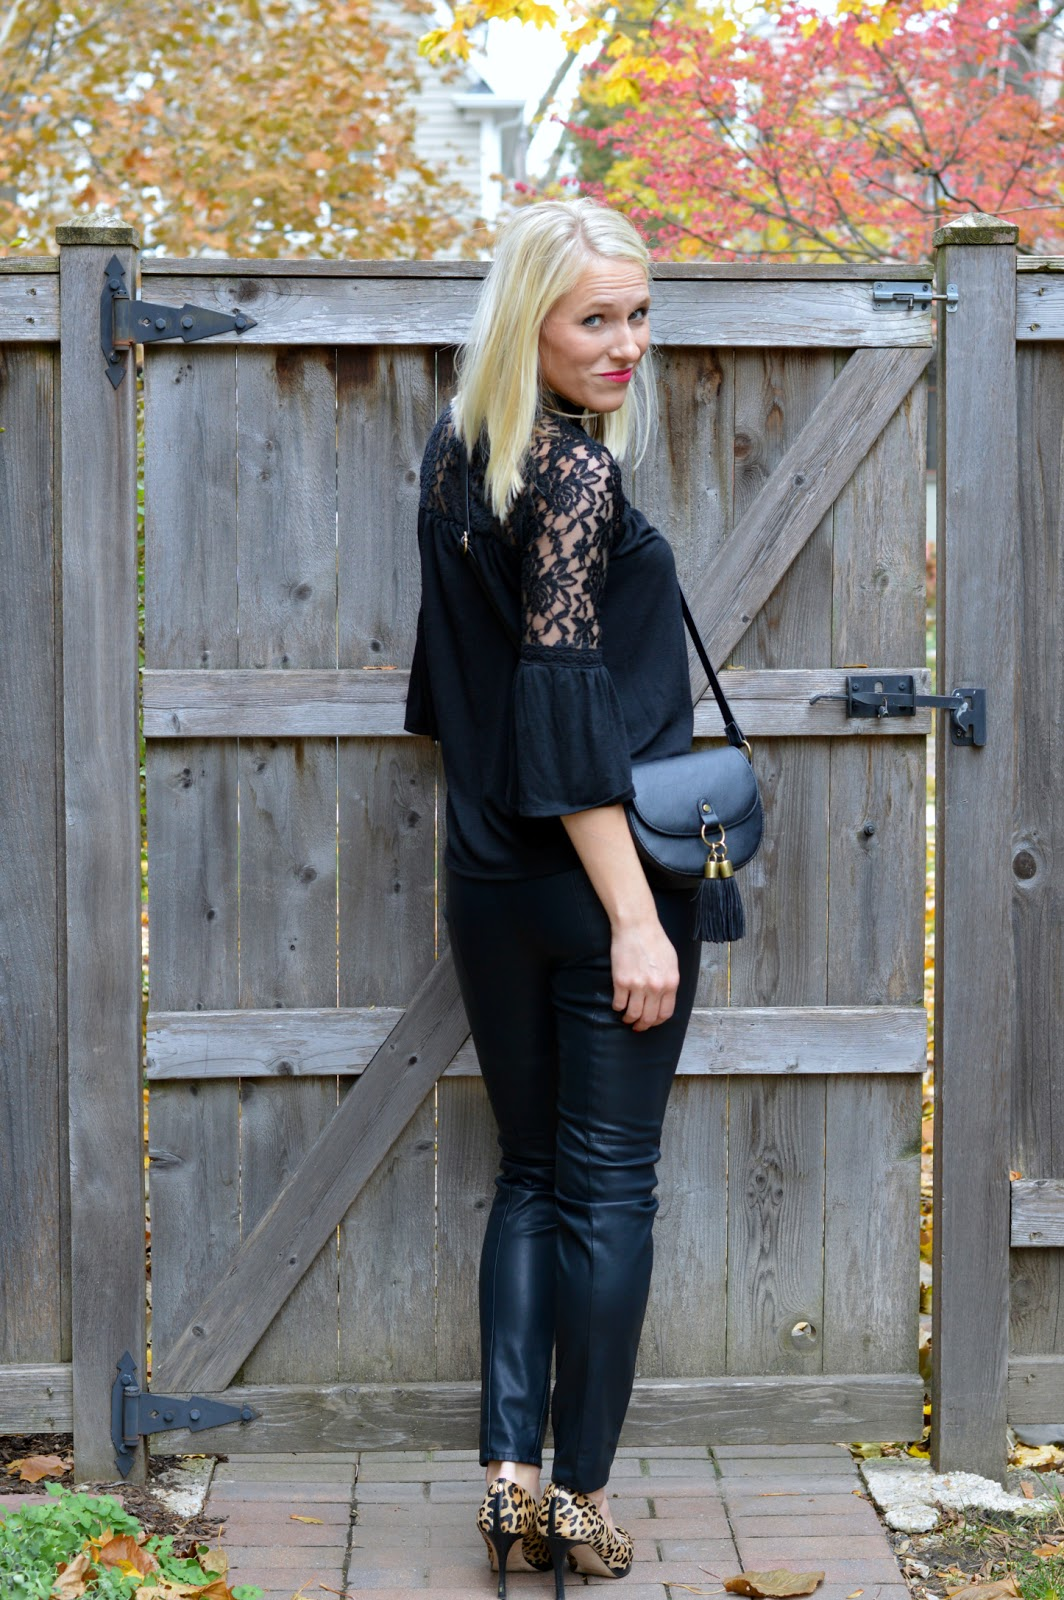 Versatile Clothing- lace top to wear with leather pants